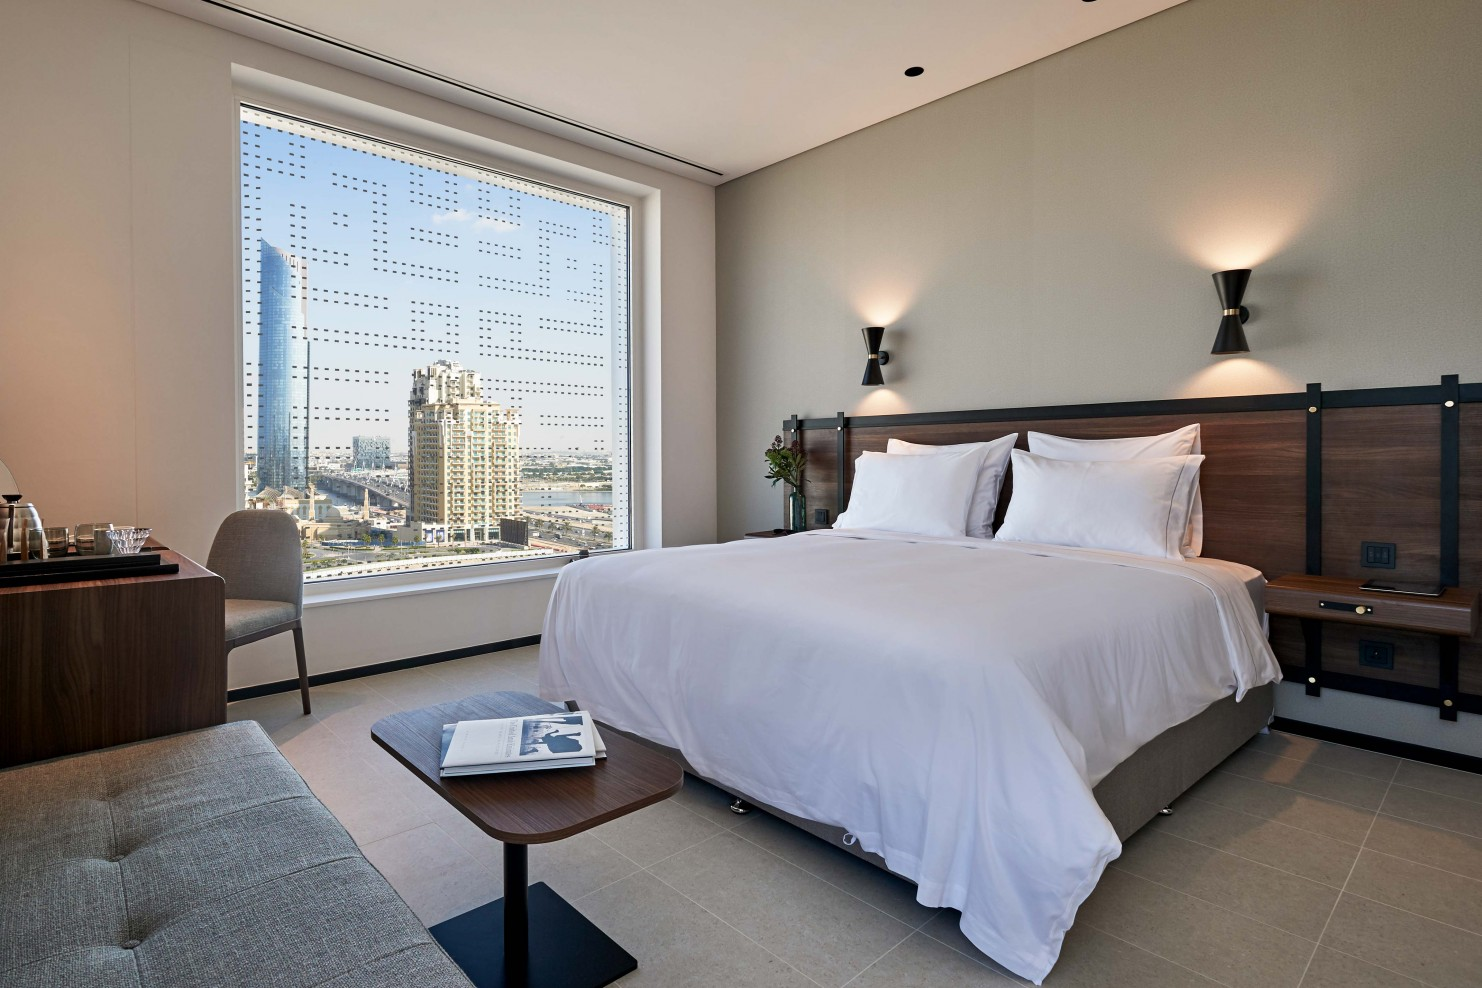 Budget boutique hotels in Dubai | Smith Hotels